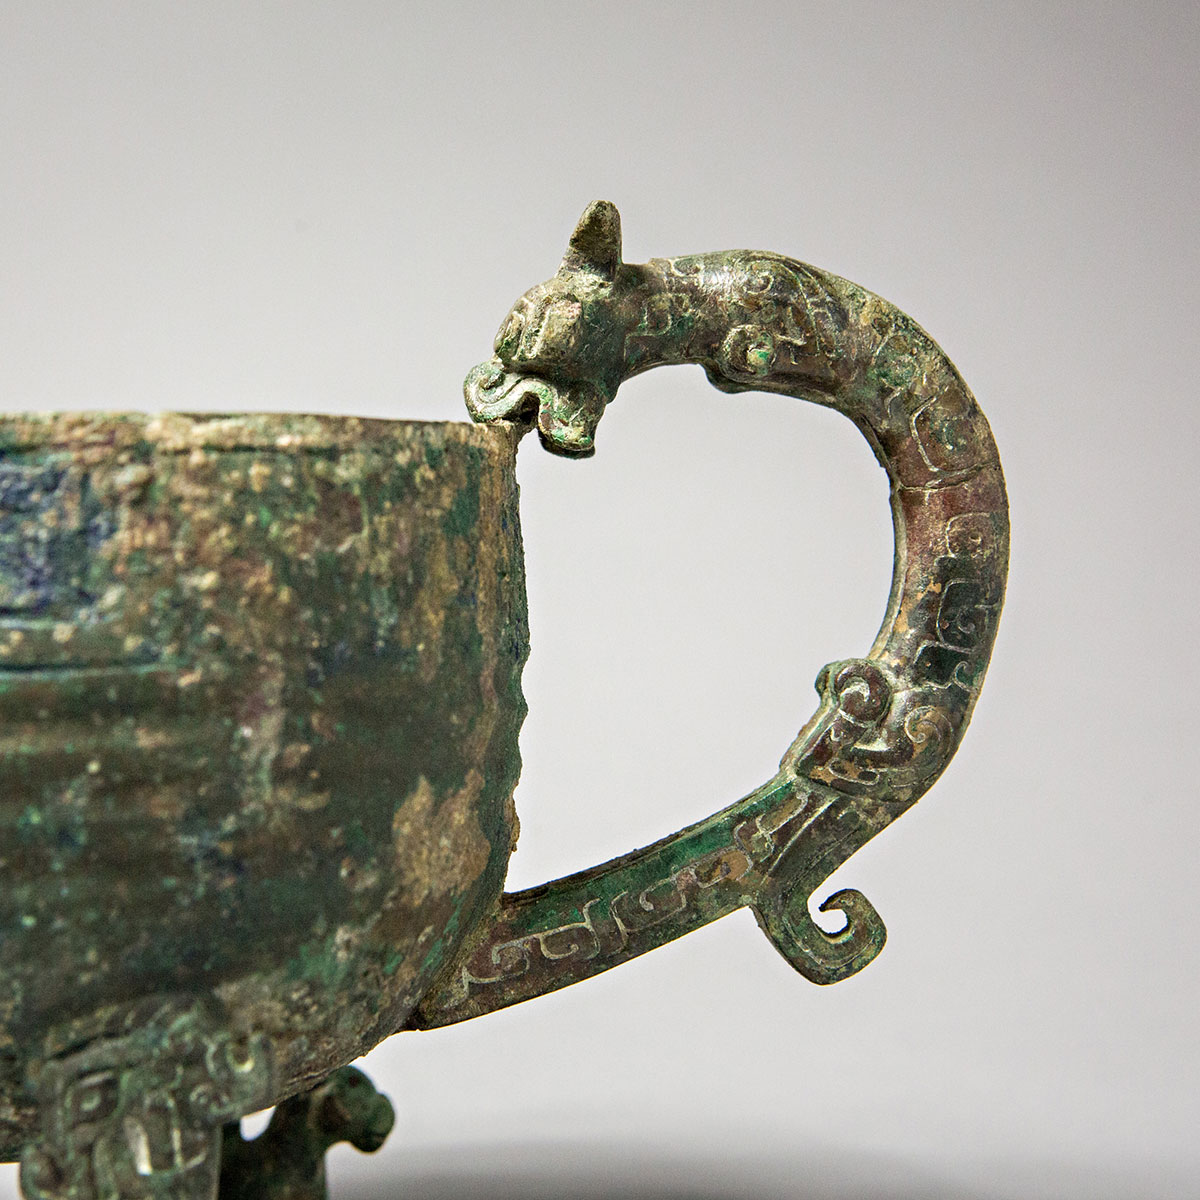 A comparison of two chinese bronze vessels from the shang and eastern zhou periods